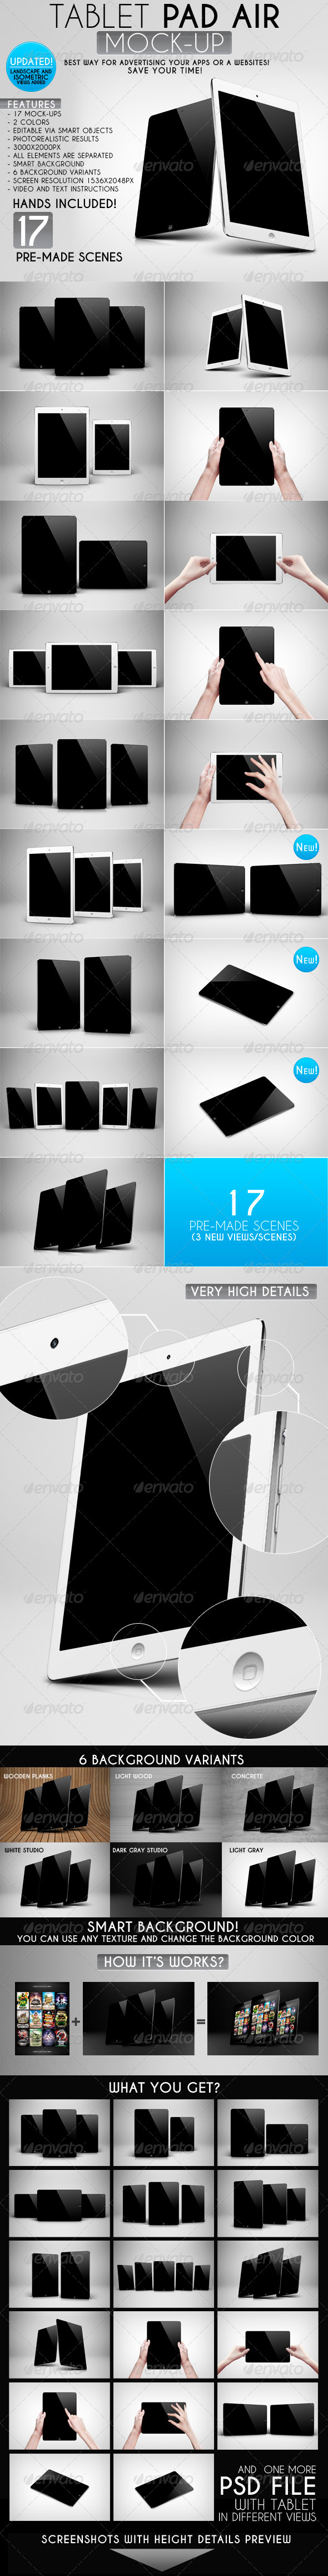 Tablet Pad Air Mock-Up - Mobile Displays